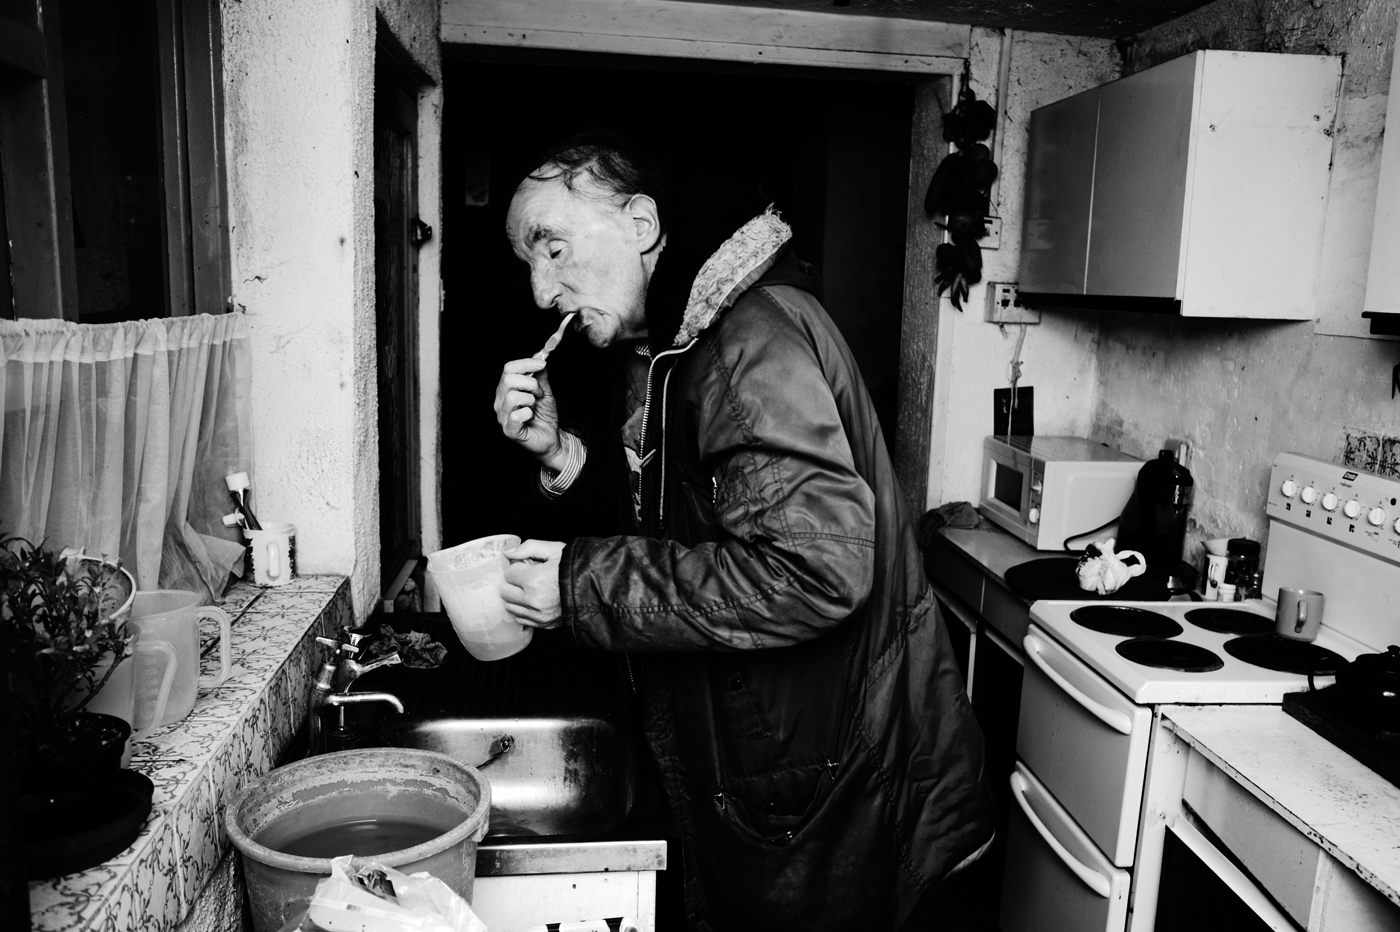 David brushing his teeth in the kitchen sink before embarking on his daily walk.